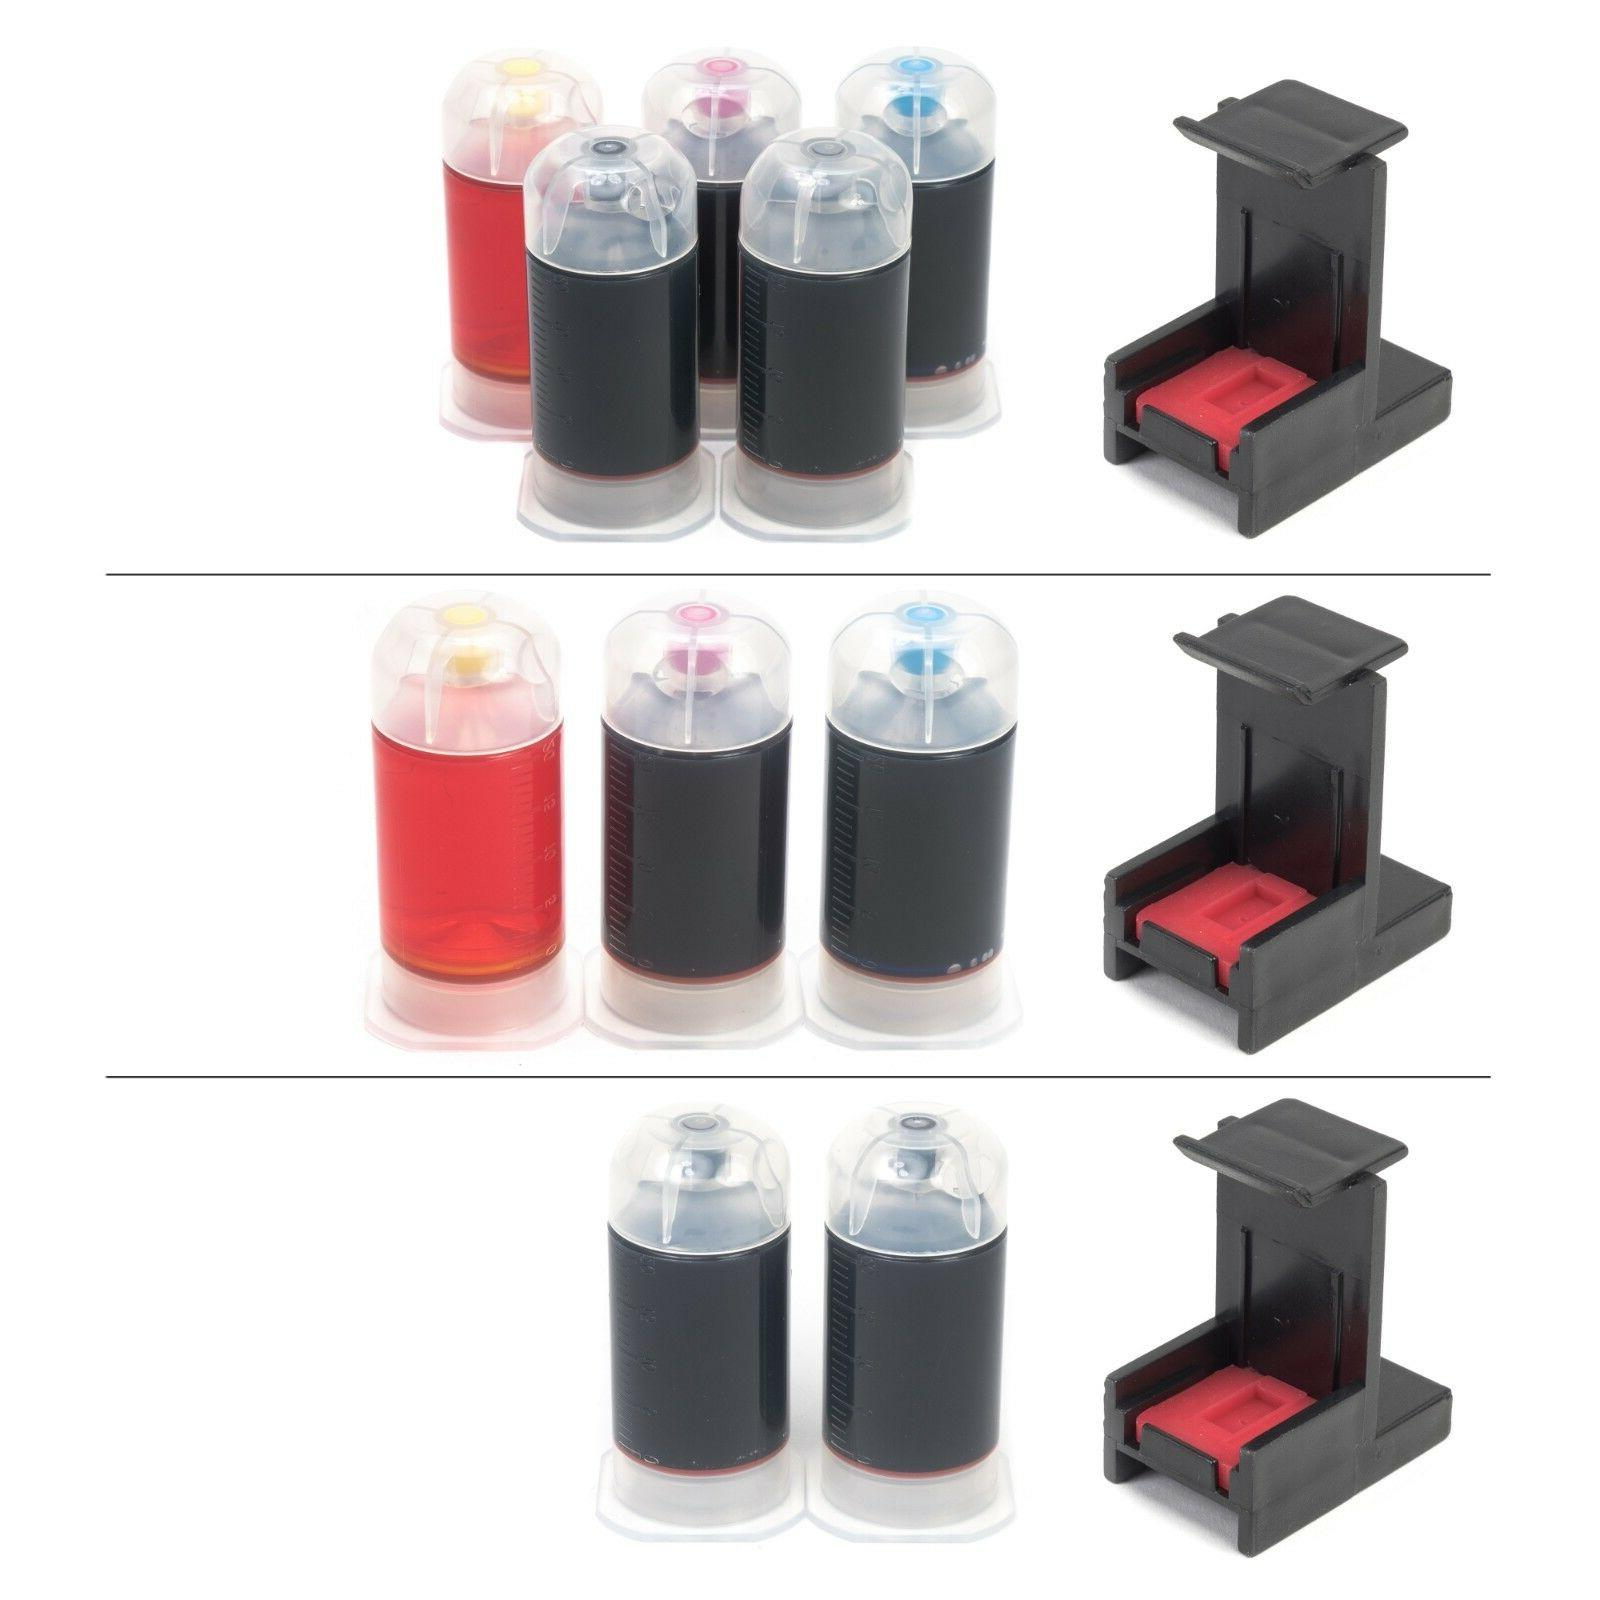 ink refill box kit for hp 60